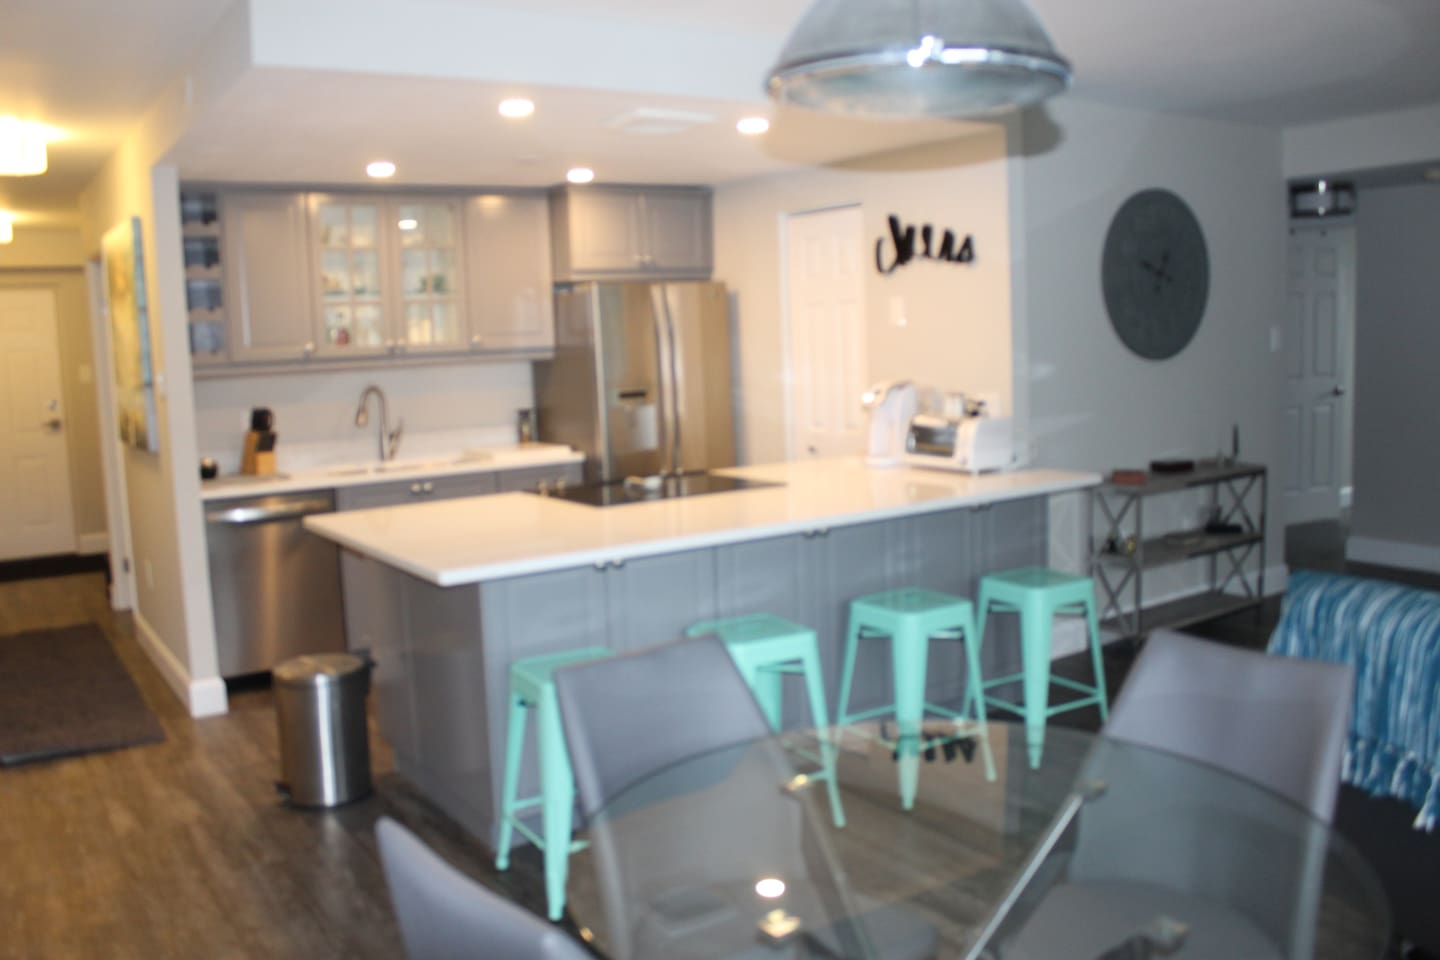 Open concept luxury kitchen, equipped with full size built in appliances and ample prep space with over sized quartz counters and bar area.